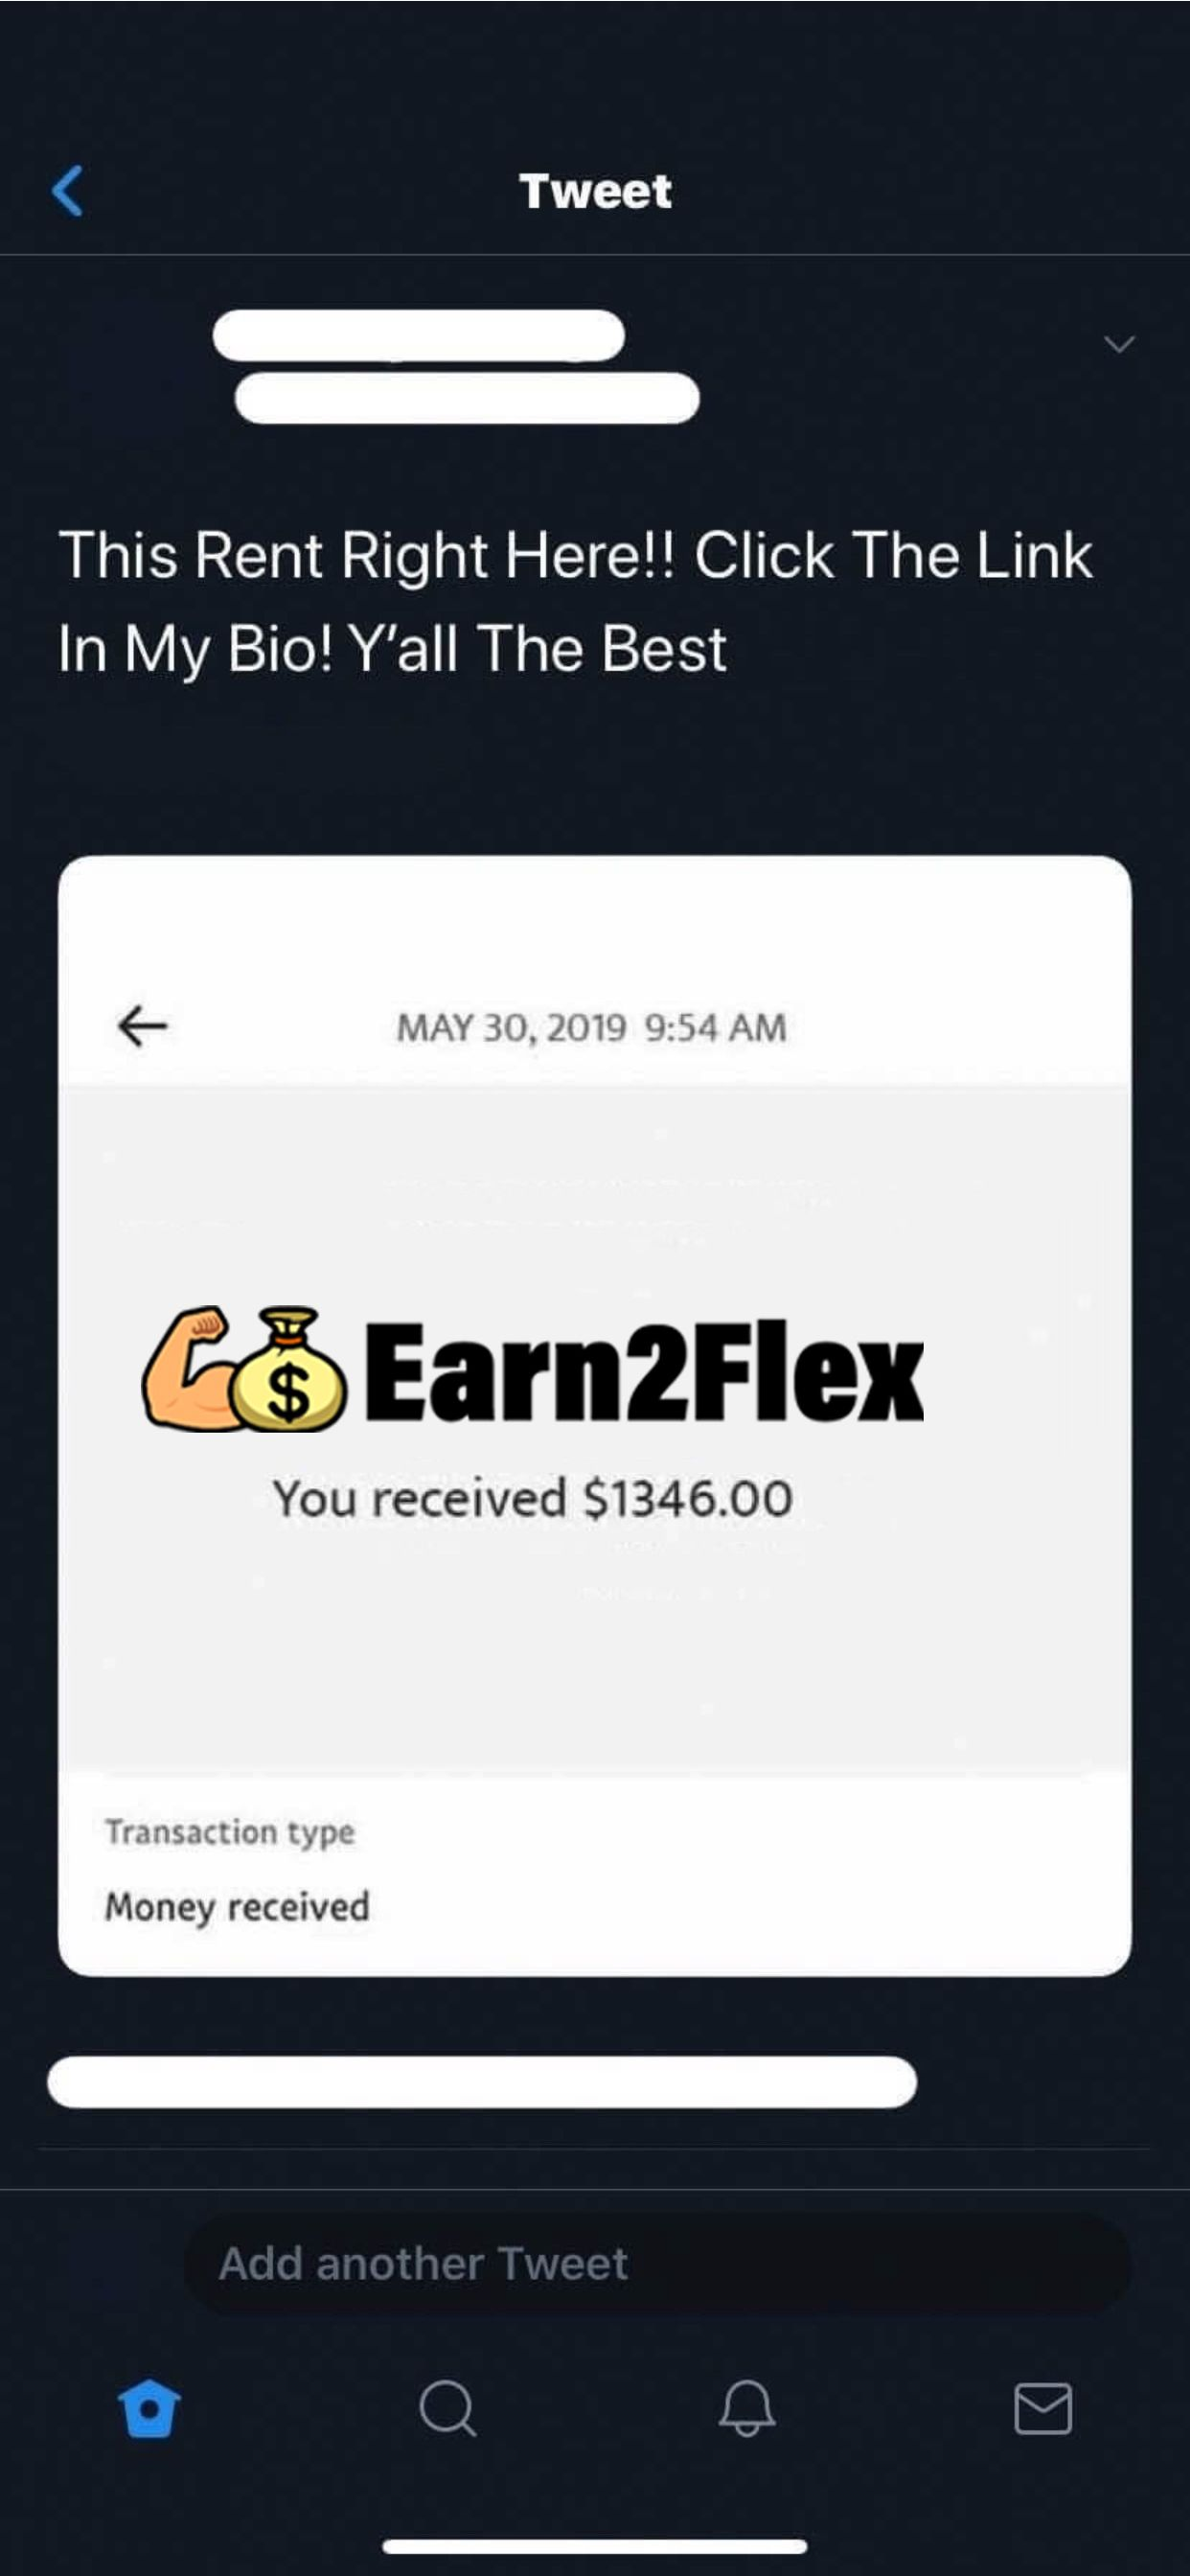 Earn2flex 1 Source Of Income For Social Influencers Social Influence Social Media Network Survey Websites